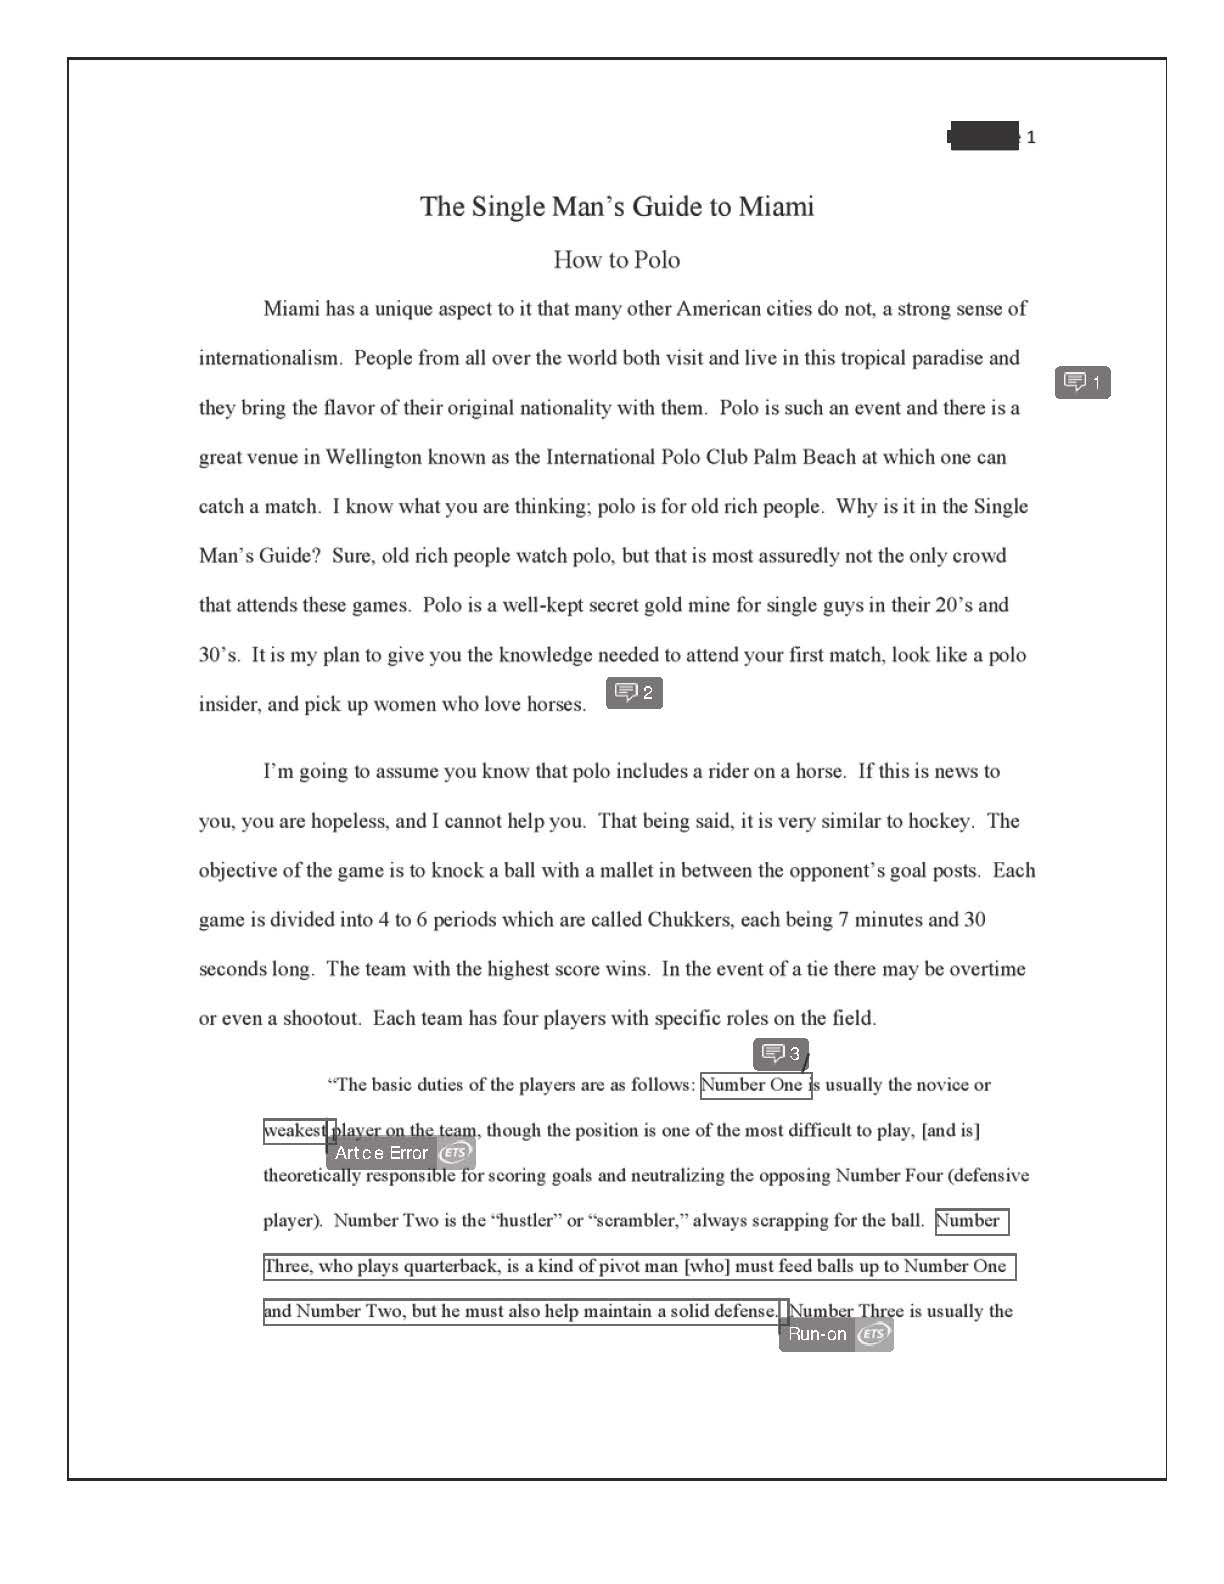 007 Informative Essay Kinds Of Writing Types Essays The Center In Hindi Final How To Polo Redacted P Pdf Task Slideshare Ppt Withs Wikipedia Dreaded Prompts 5th Grade 9th Graphic Organizer Full